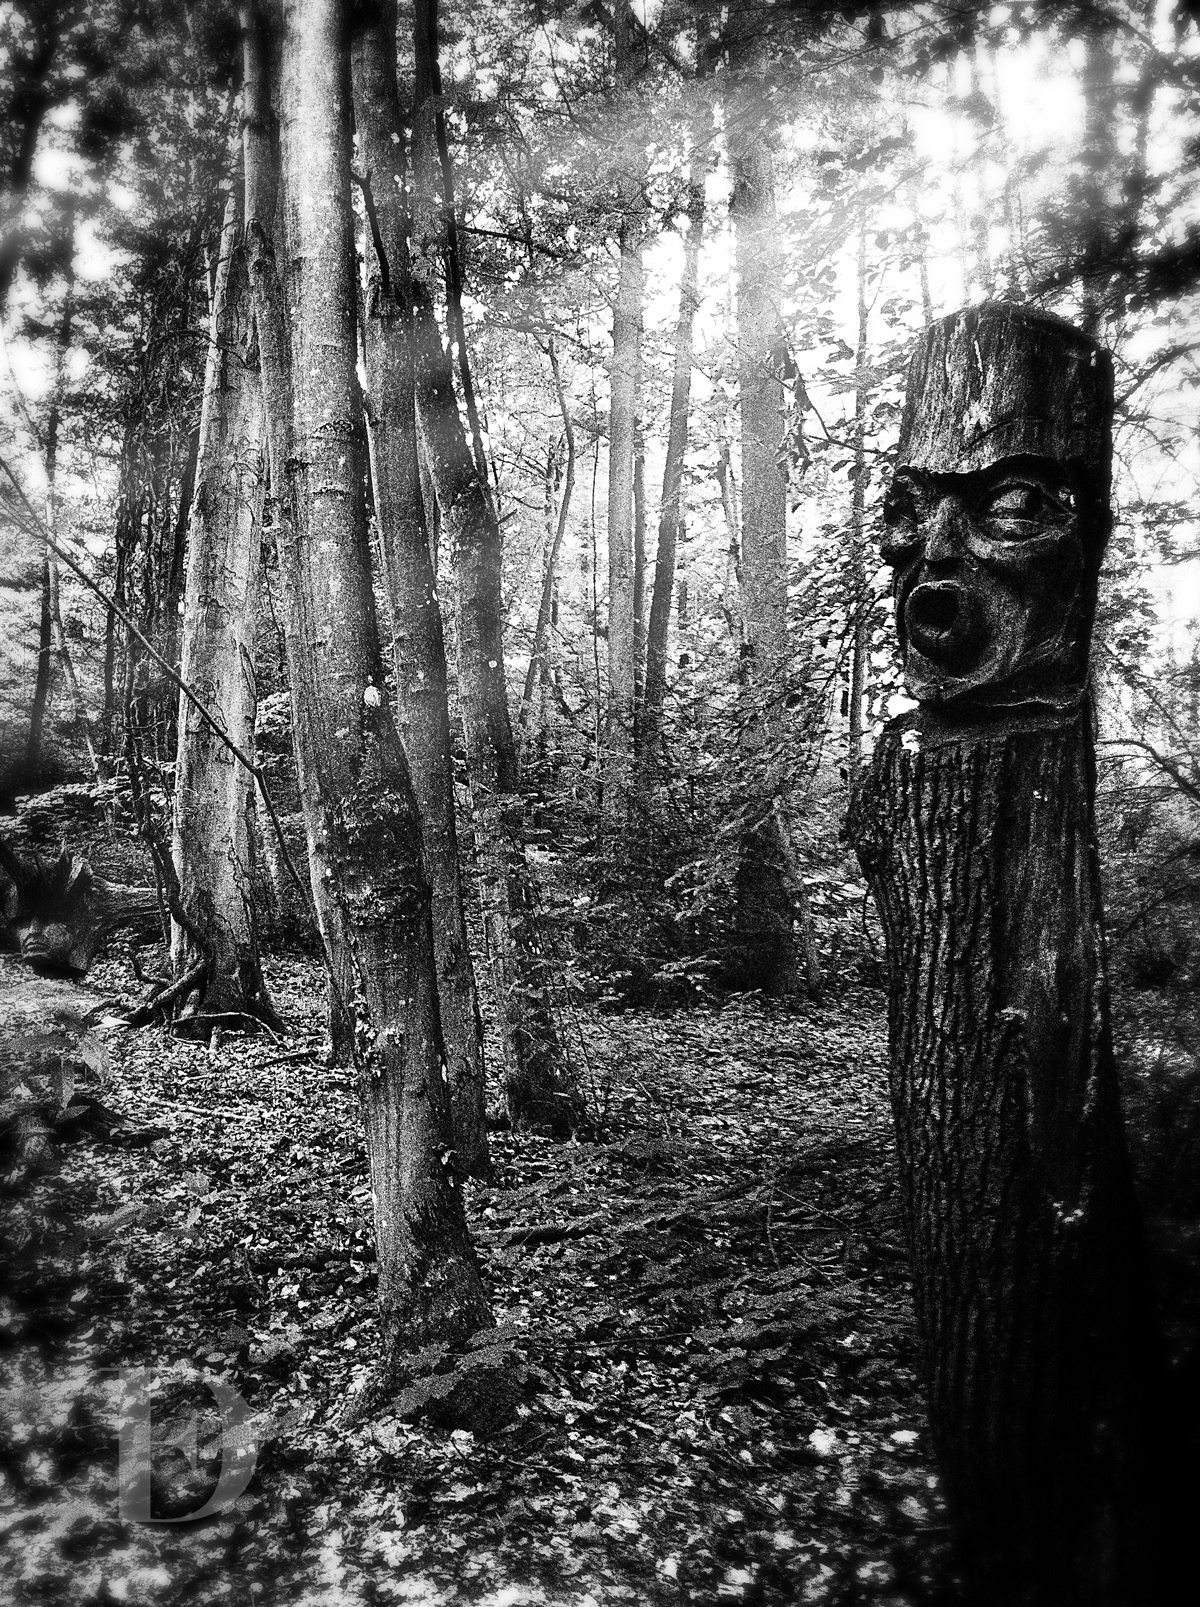 Mystical wood people